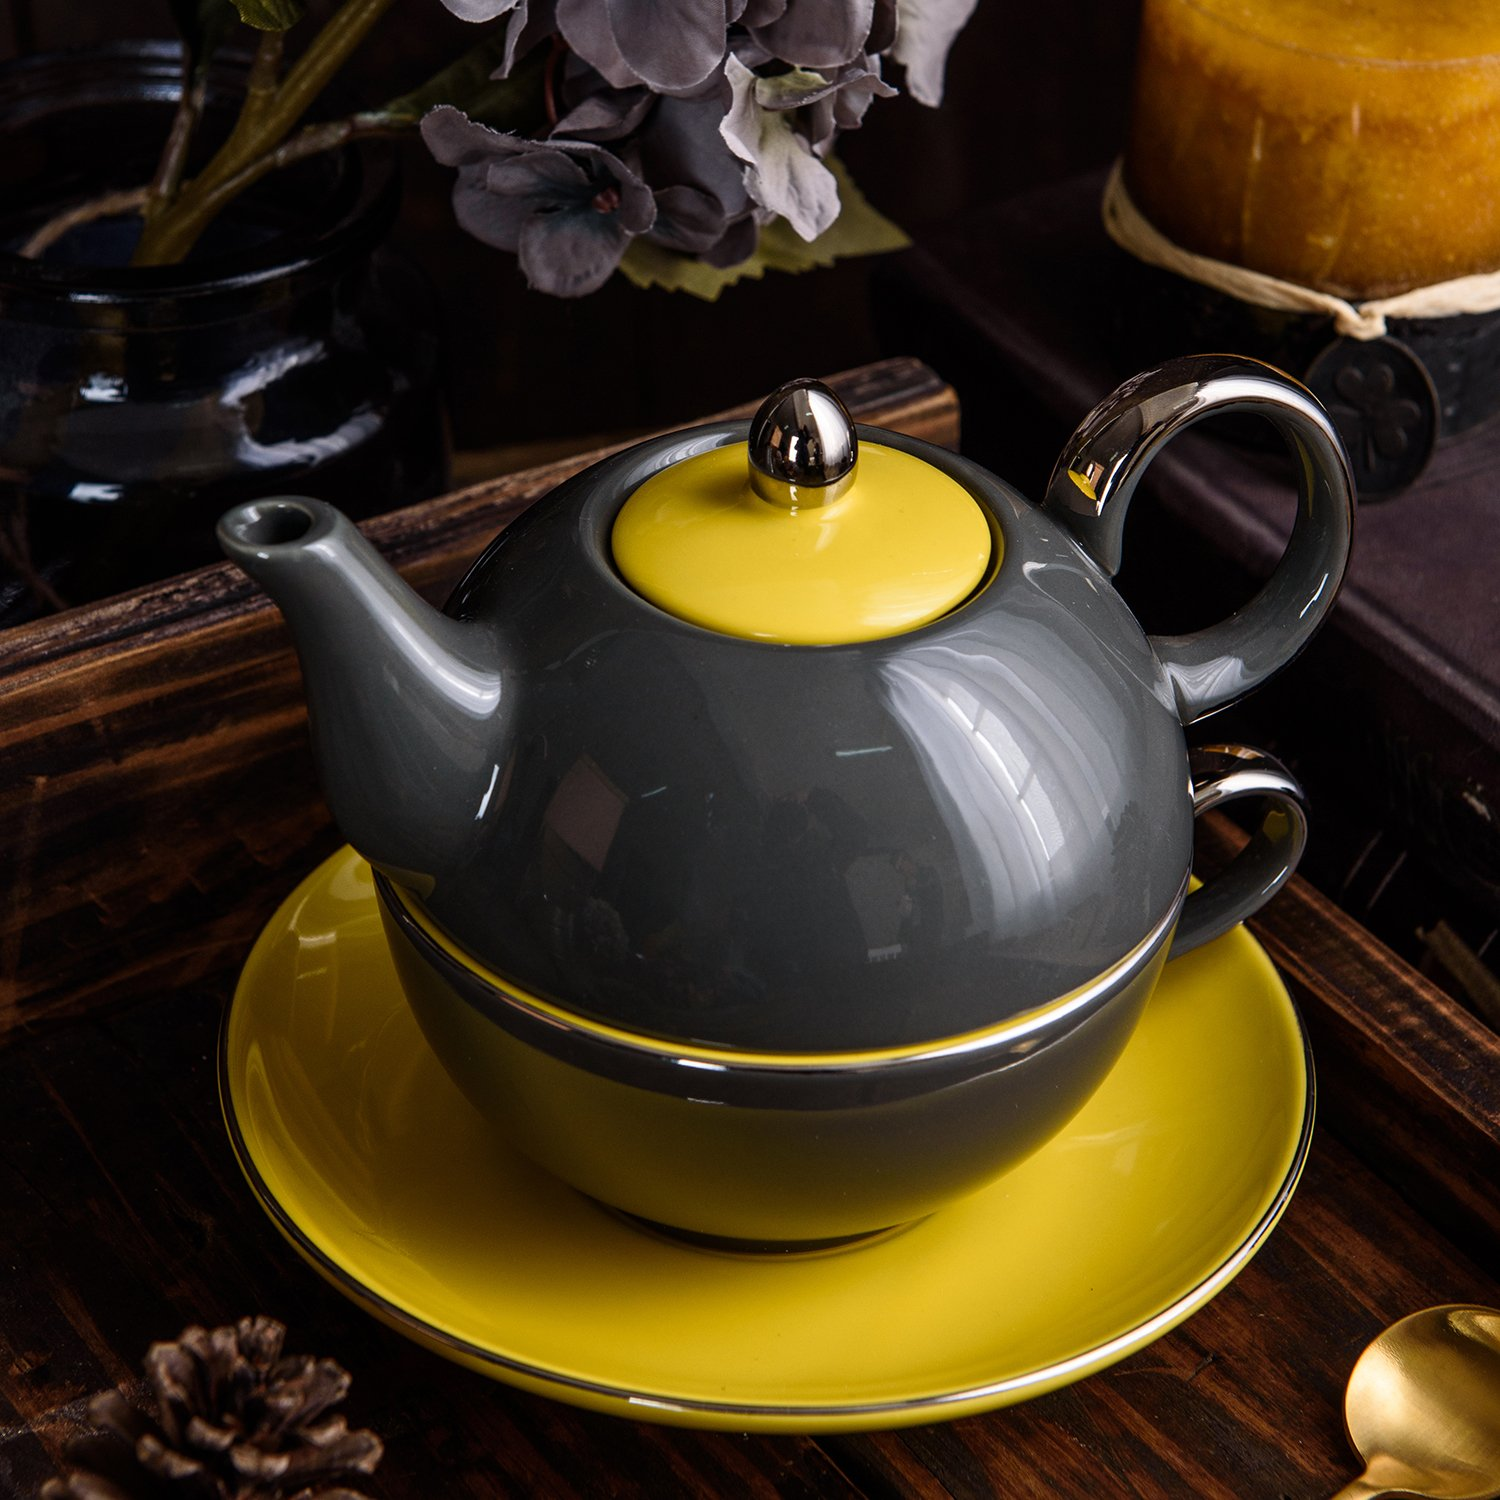 Artvigor Ceramic Porcelain Travel Tea Set For One With One Teapot And Cup With Saucer Stackable Single Serve 3-Piece Teaware Set